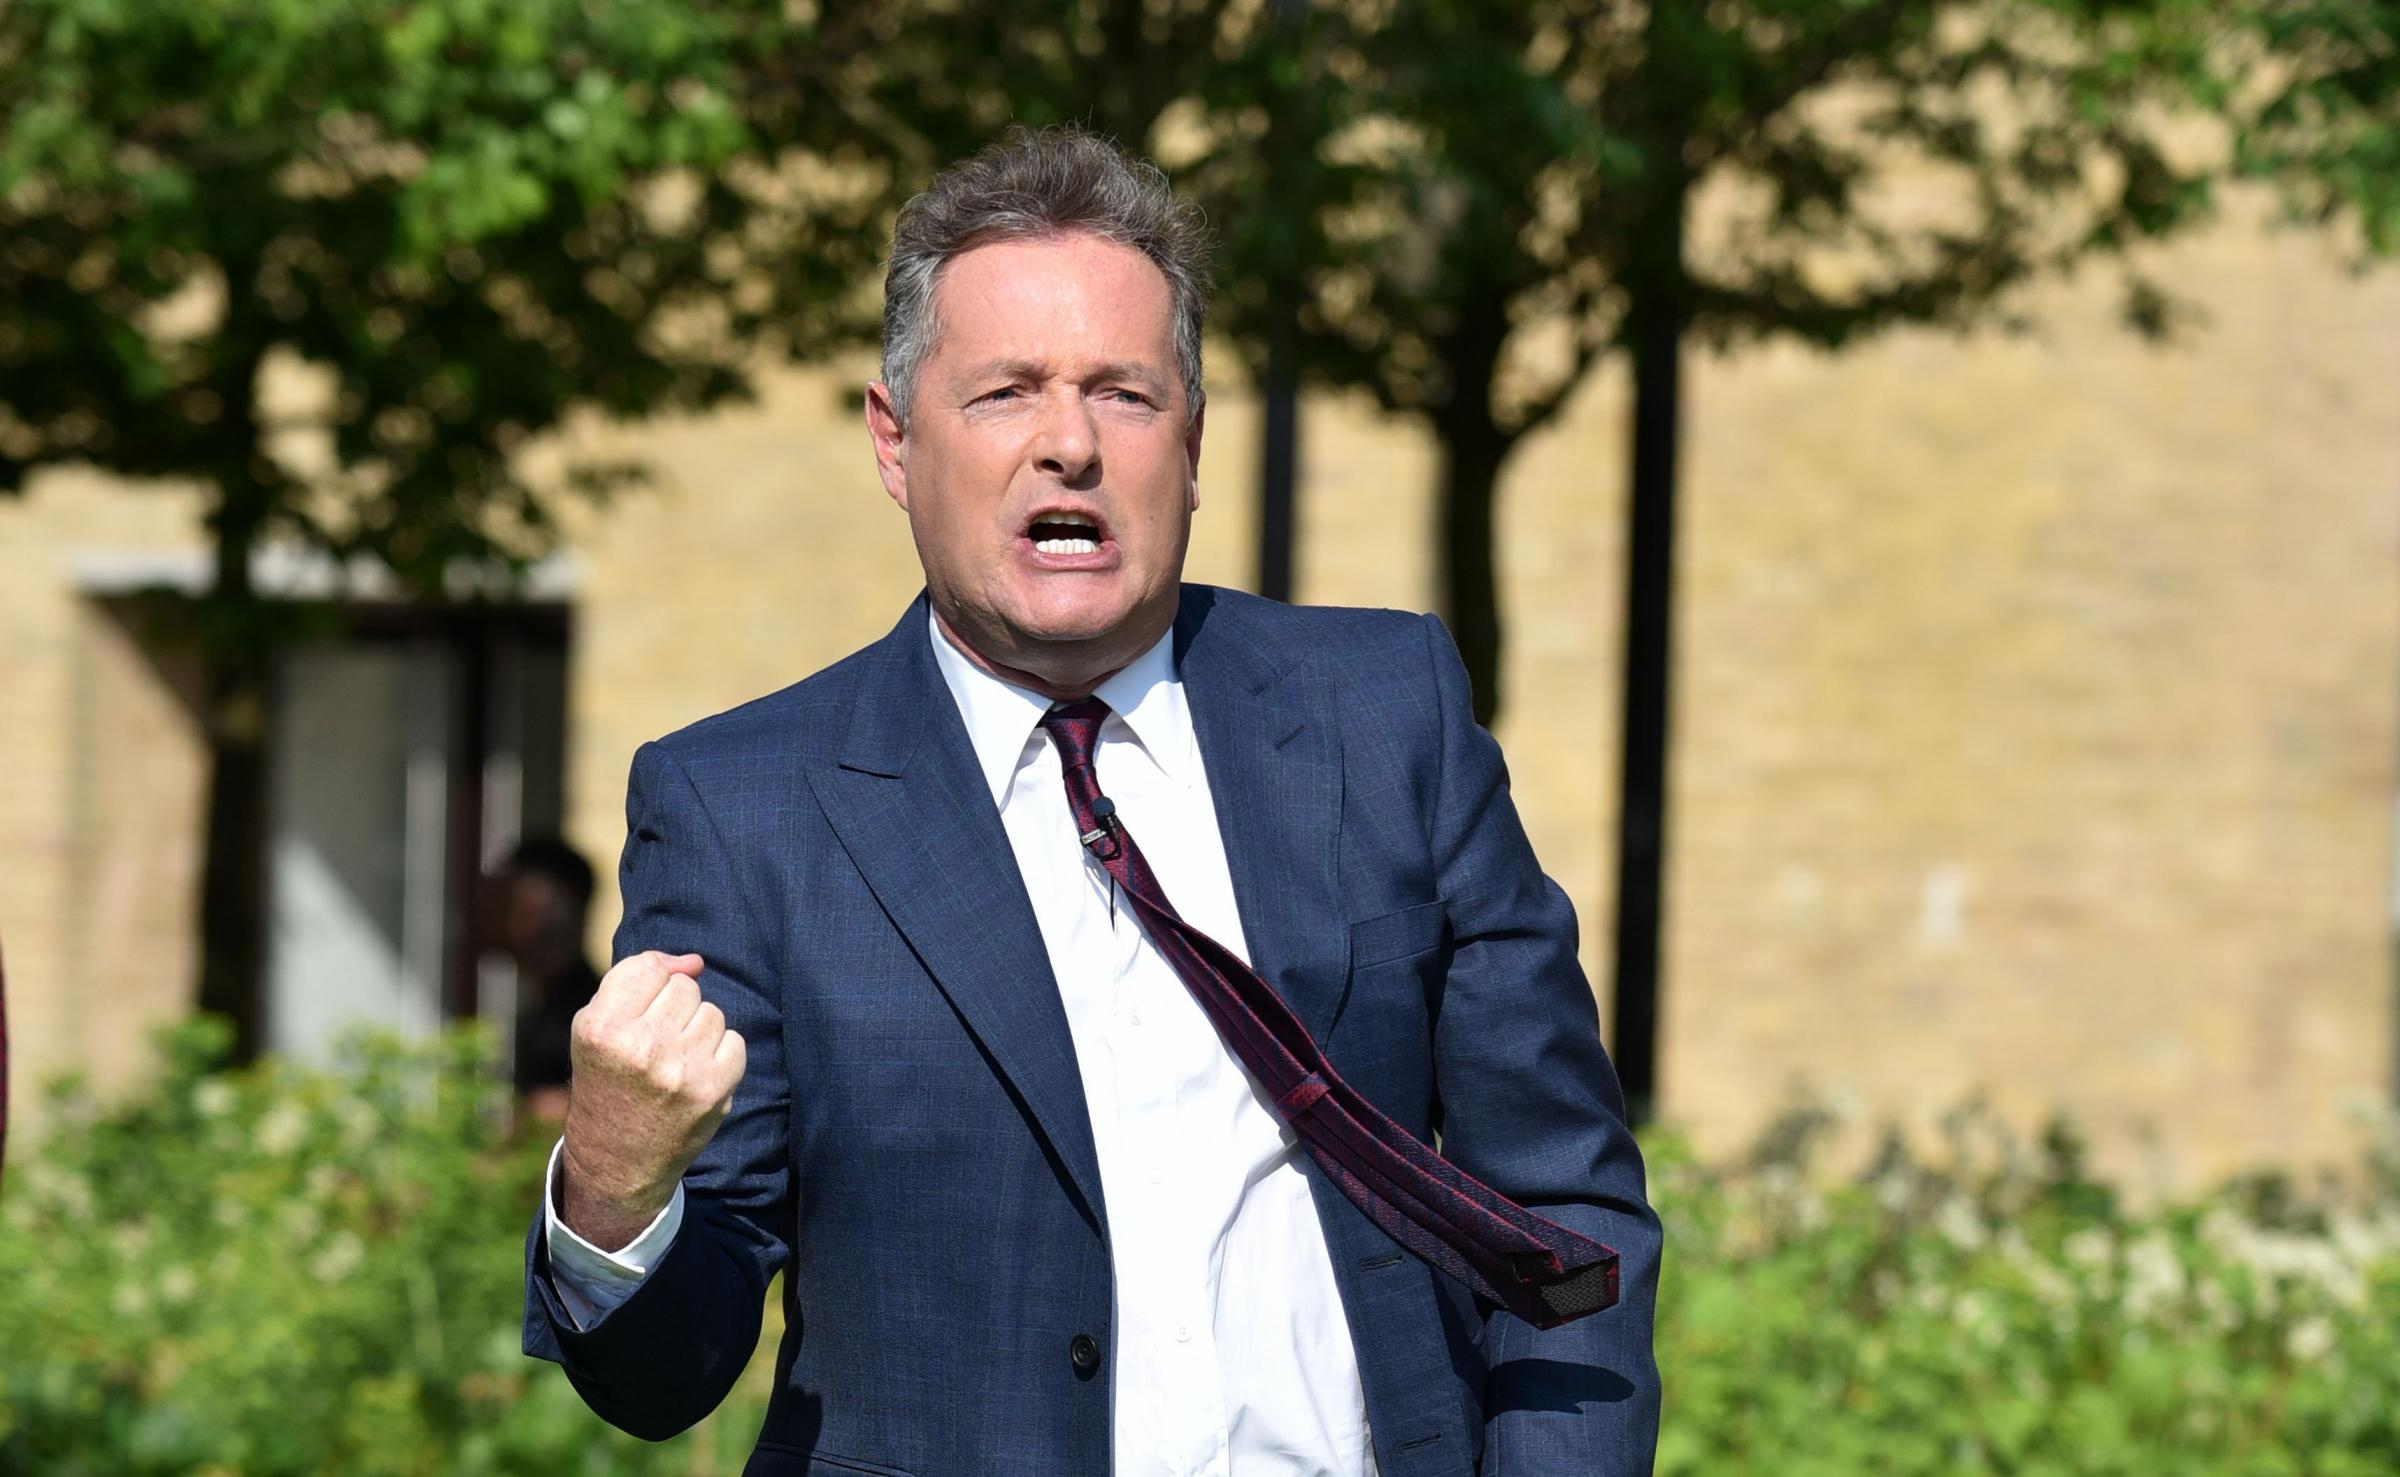 Outrage over the vegan sausage roll even made the very reasonable and calm Piers Morgan lose the plot